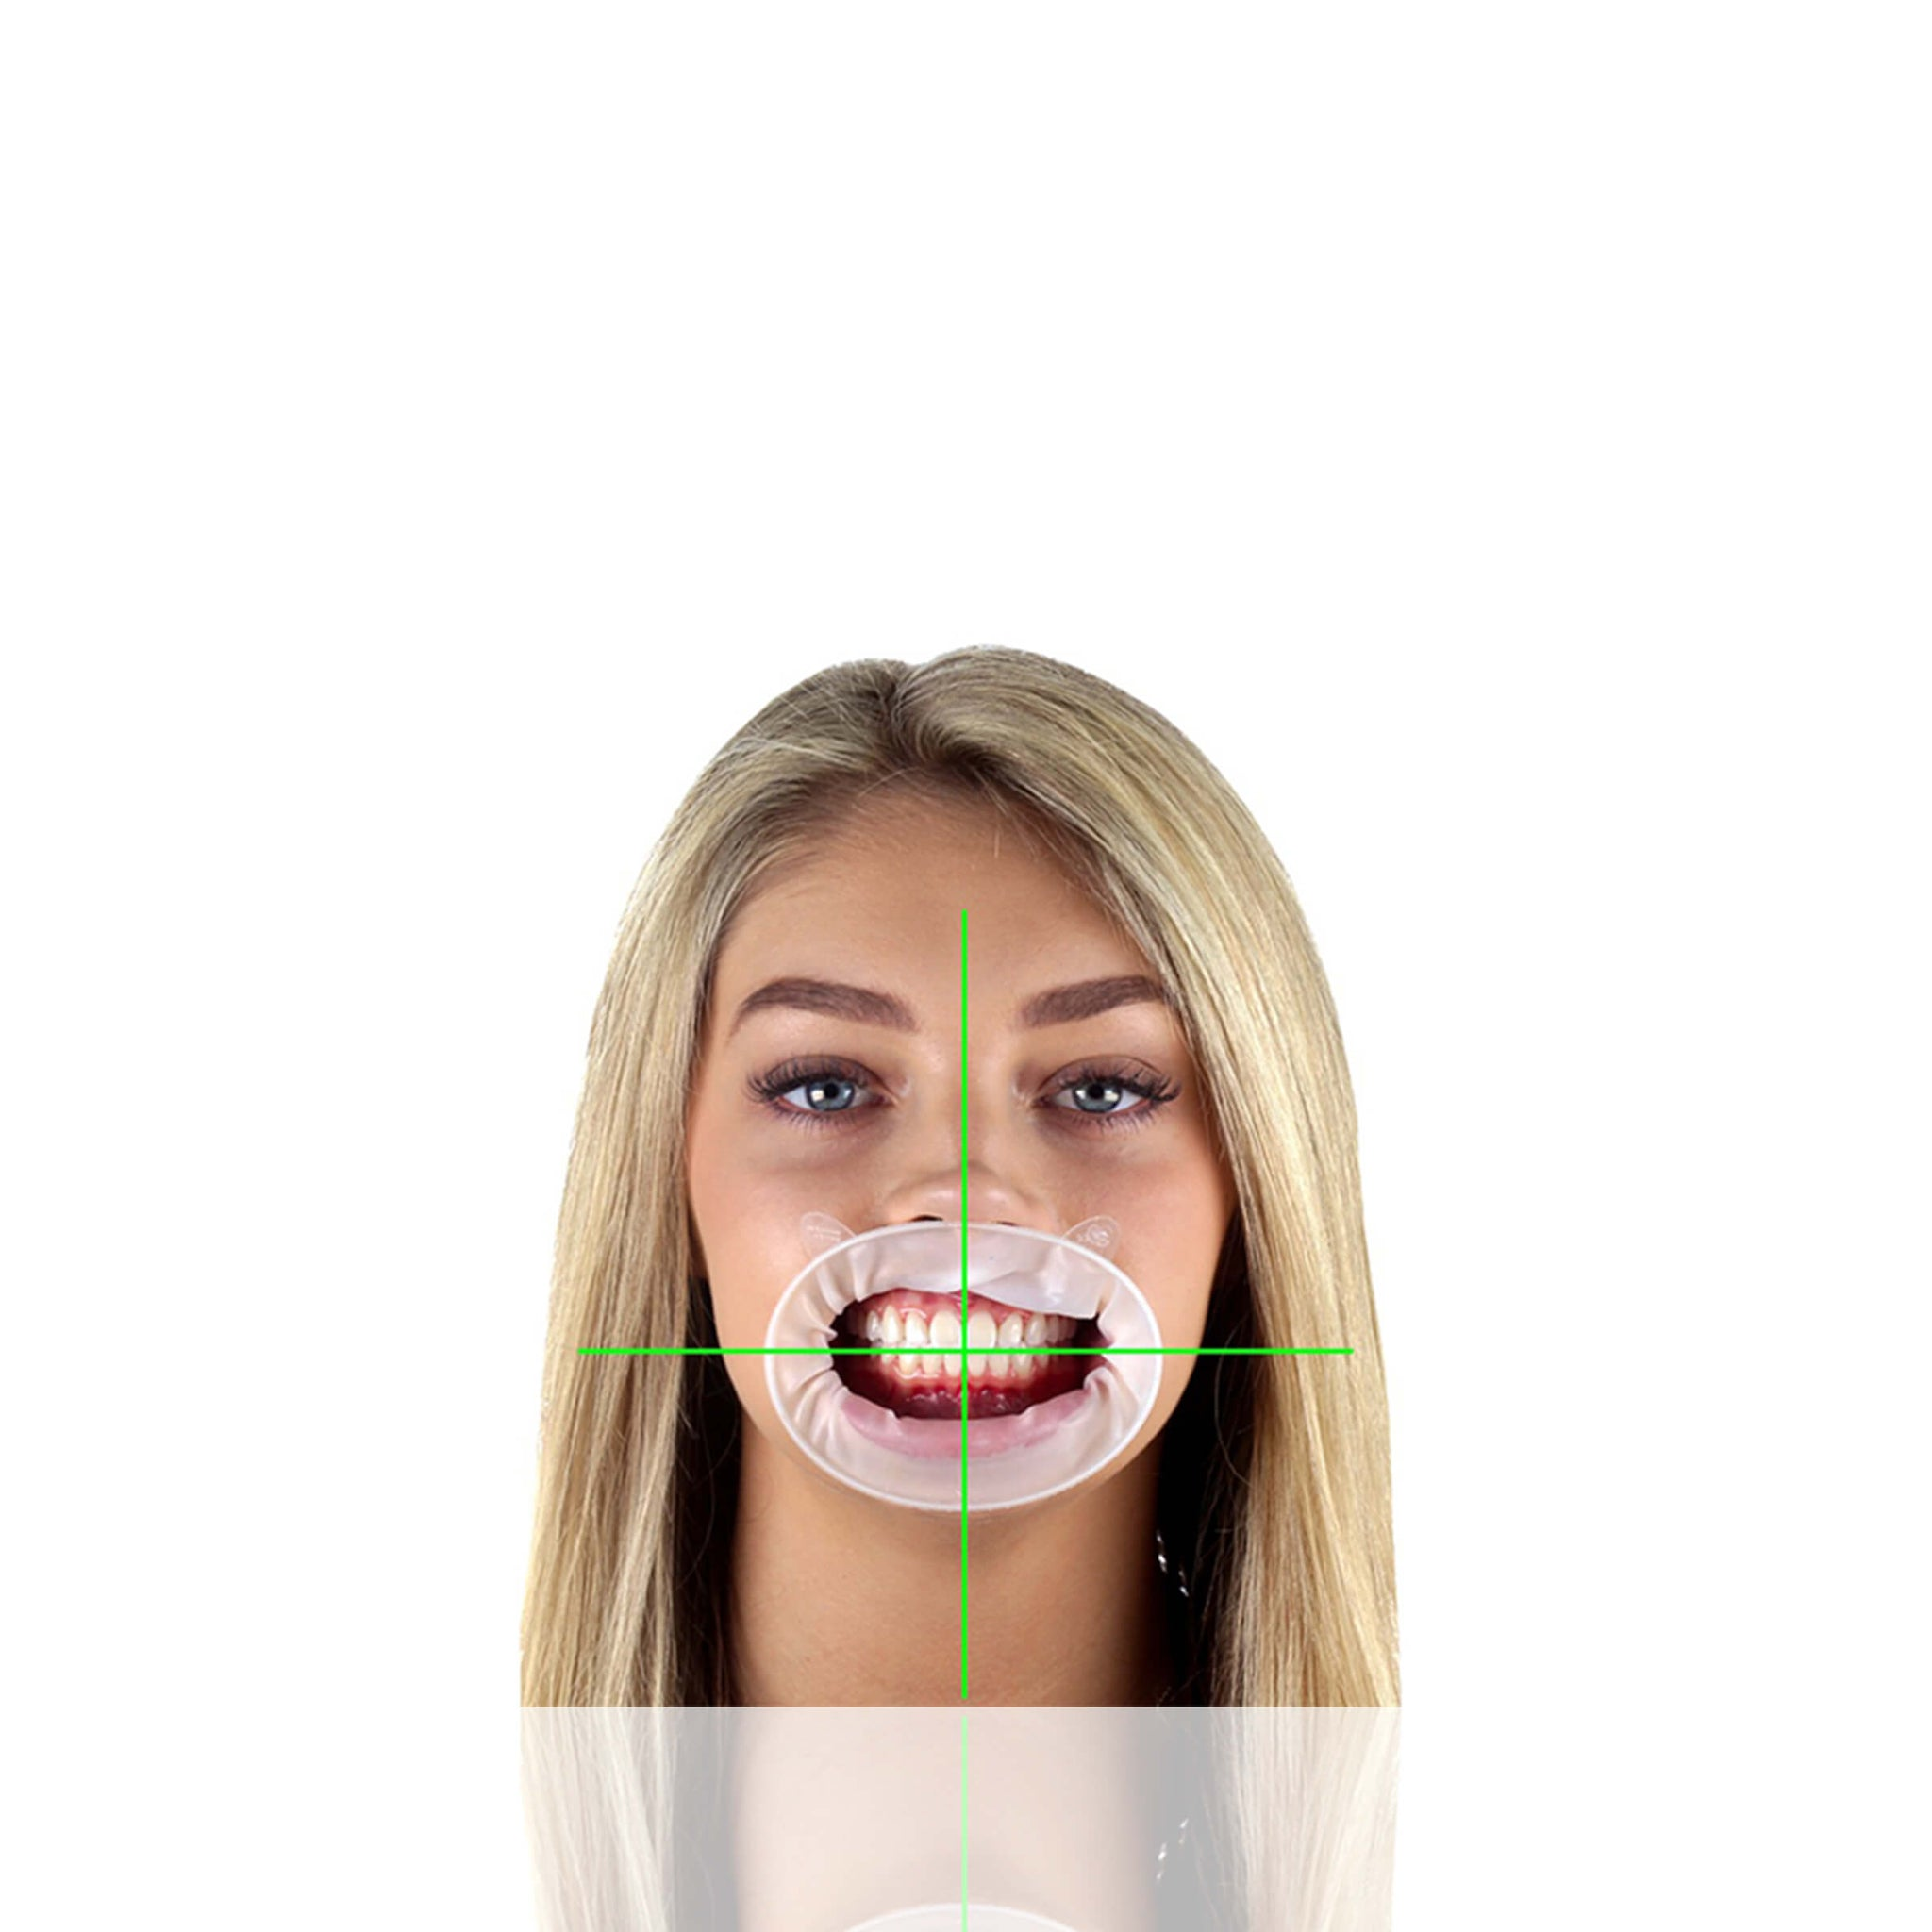 Capturing the midline and horizontal line angles is crucial communication for the laboratory when building a case regarding dental aesthetics.